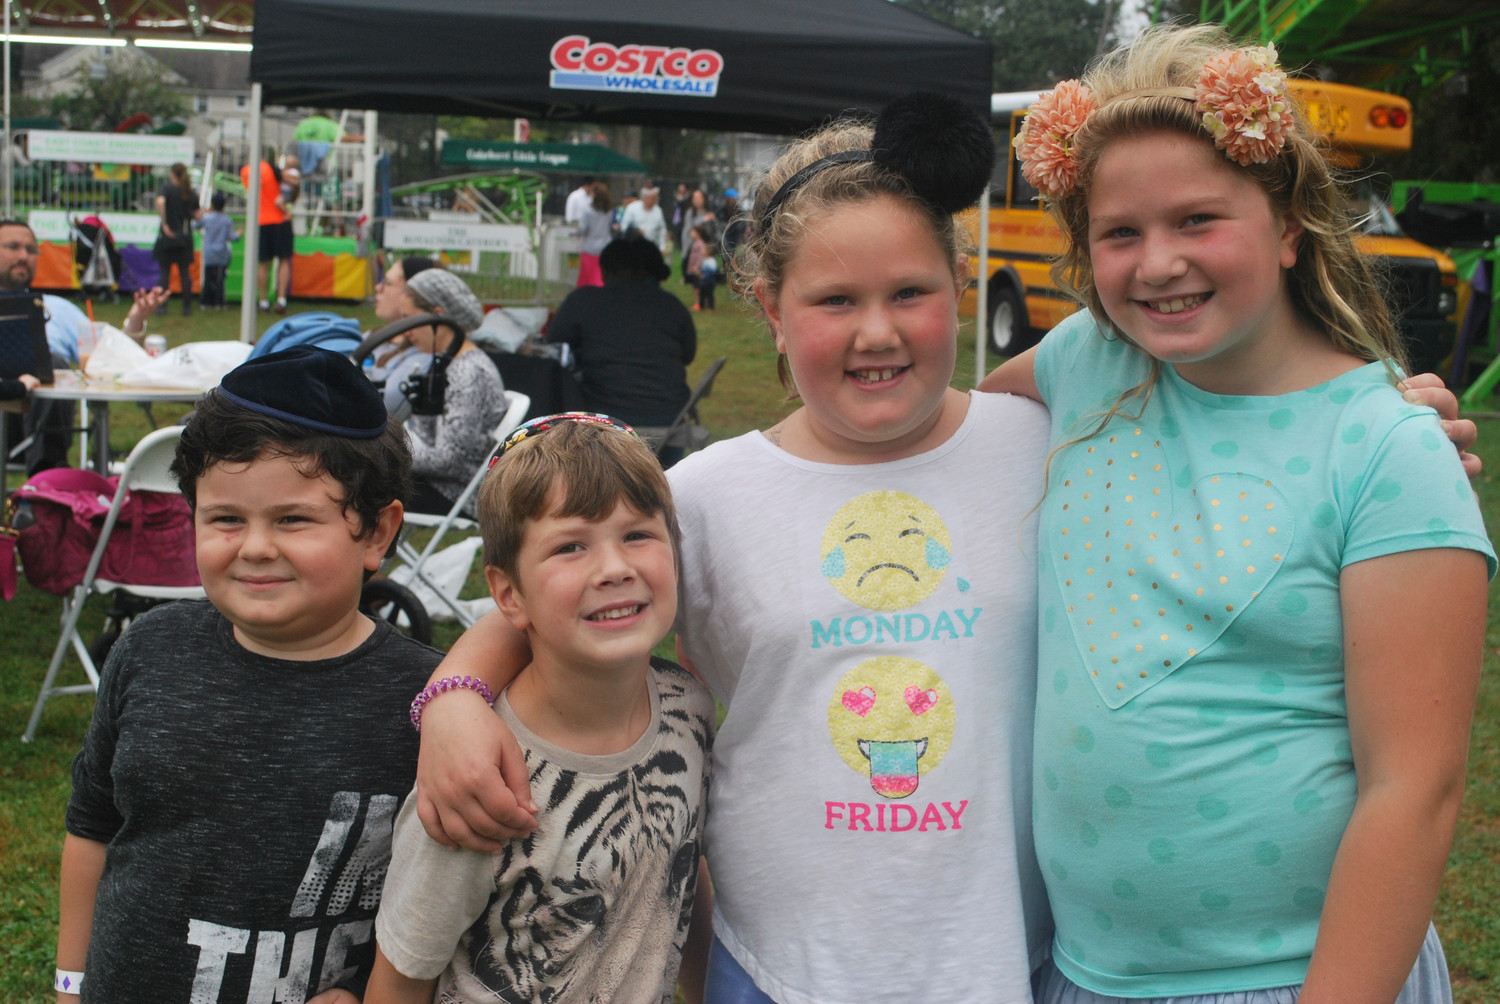 The Community Chest fair brought family and friends from Cedarhurst together for fun on Oct. 8. From left were Solly Labell, 5, and the Wechters: Sammy, 5, Lilly, 7, and Rosie, 9.